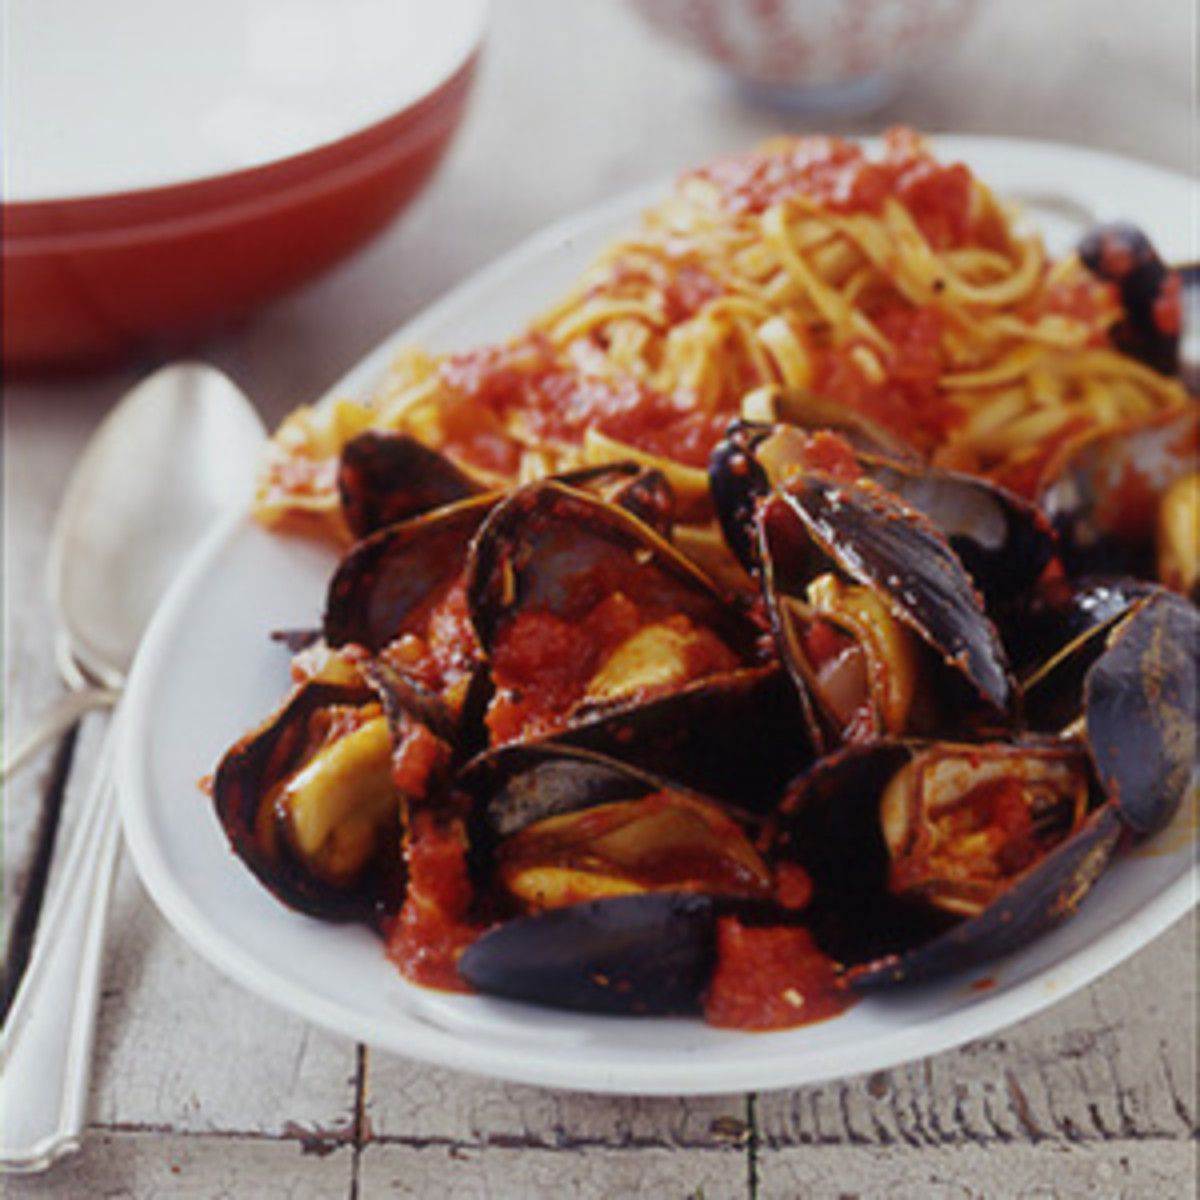 Mussels In Roasted Red Pepper Sauce Recipe Roasted Red Pepper Sauce Red Pepper Sauce Roasted Red Pepper Sauce Recipe